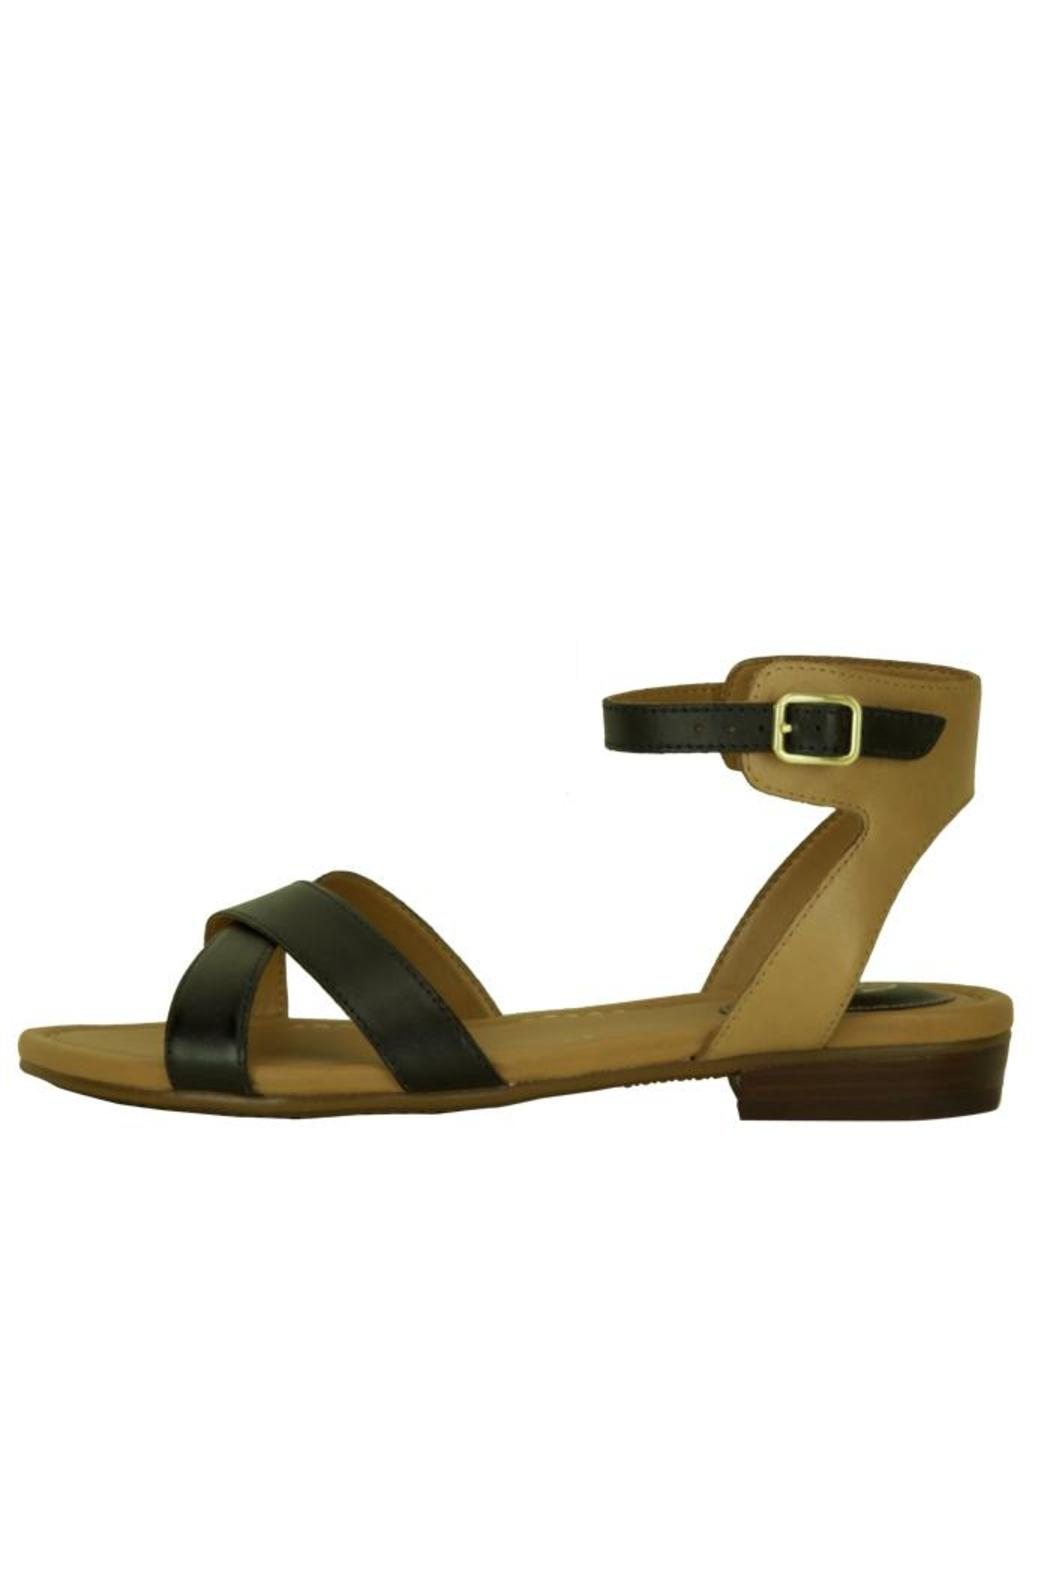 95582a5cb Clarks Viveca Zeal Sandal from Washington by Magnolia s Shoes ...